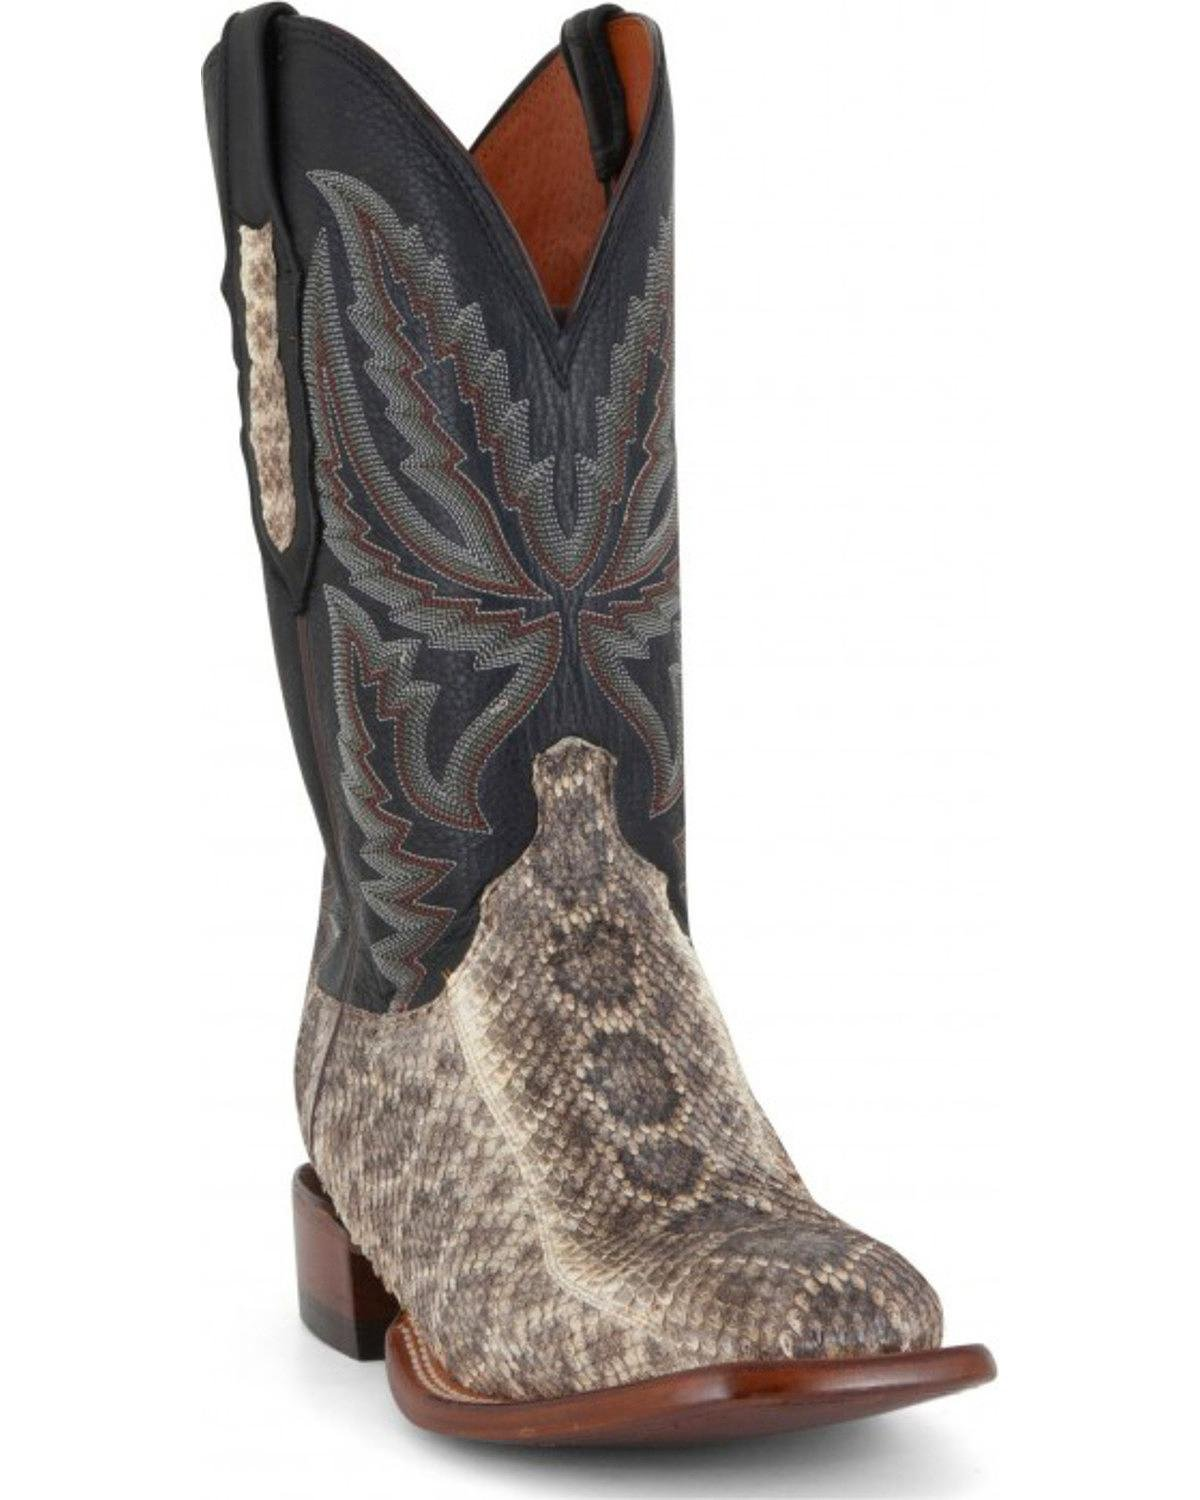 Lucchese Men's Rattlesnake And Calf Western Boot Wide Square Toe Black 9.5 D